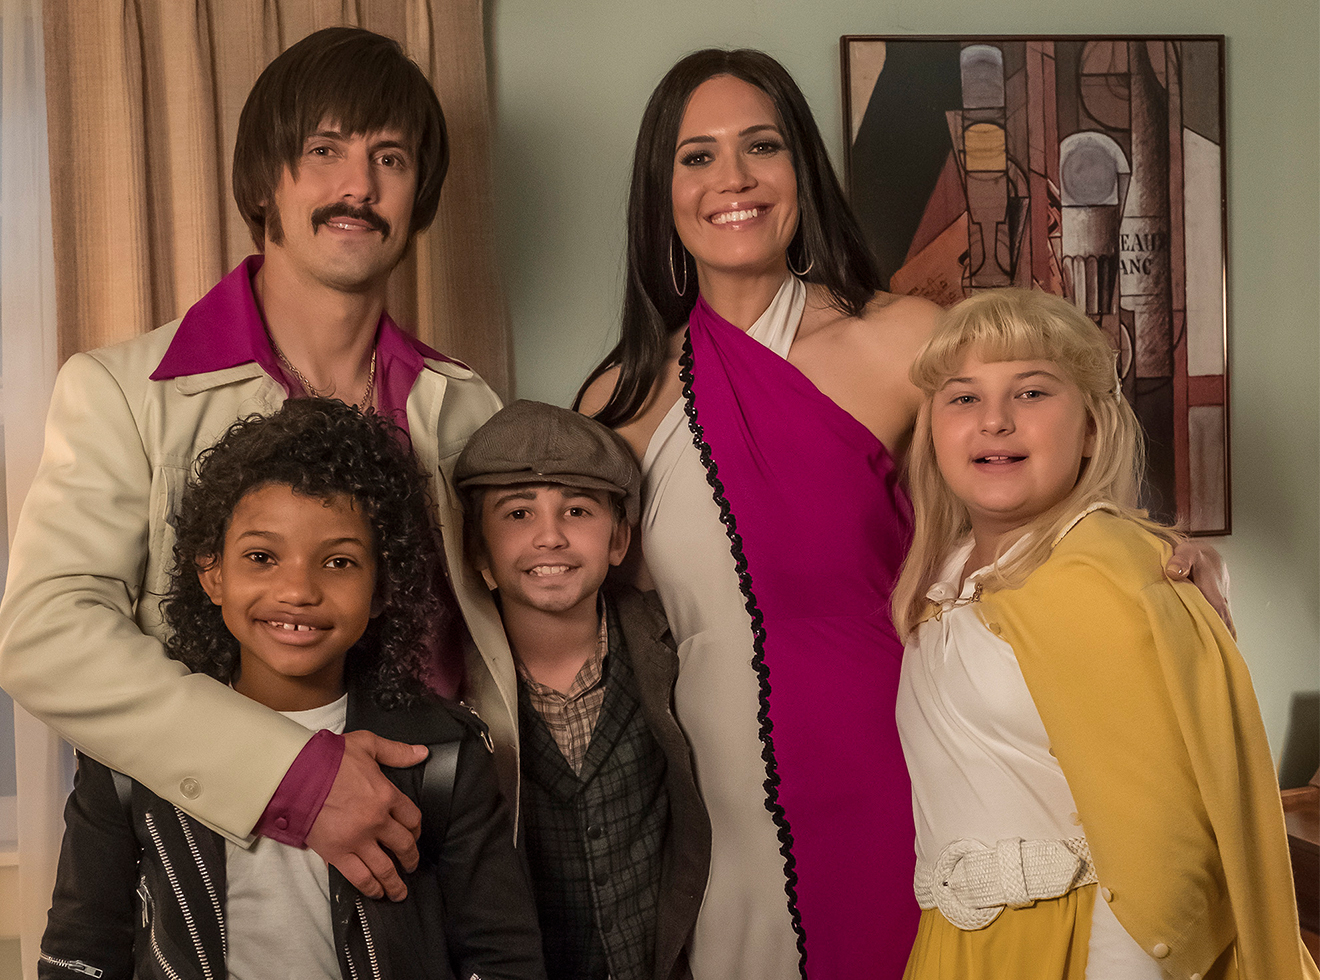 Ventimiglia (upper left) channels his inner Sonny Bono as Jack Pearson on This is Us, co-starring (clockwise from upper right) Mandy Moore, Mackenzie Hancsicsak, Parker Bates, and Lonnie Chavis